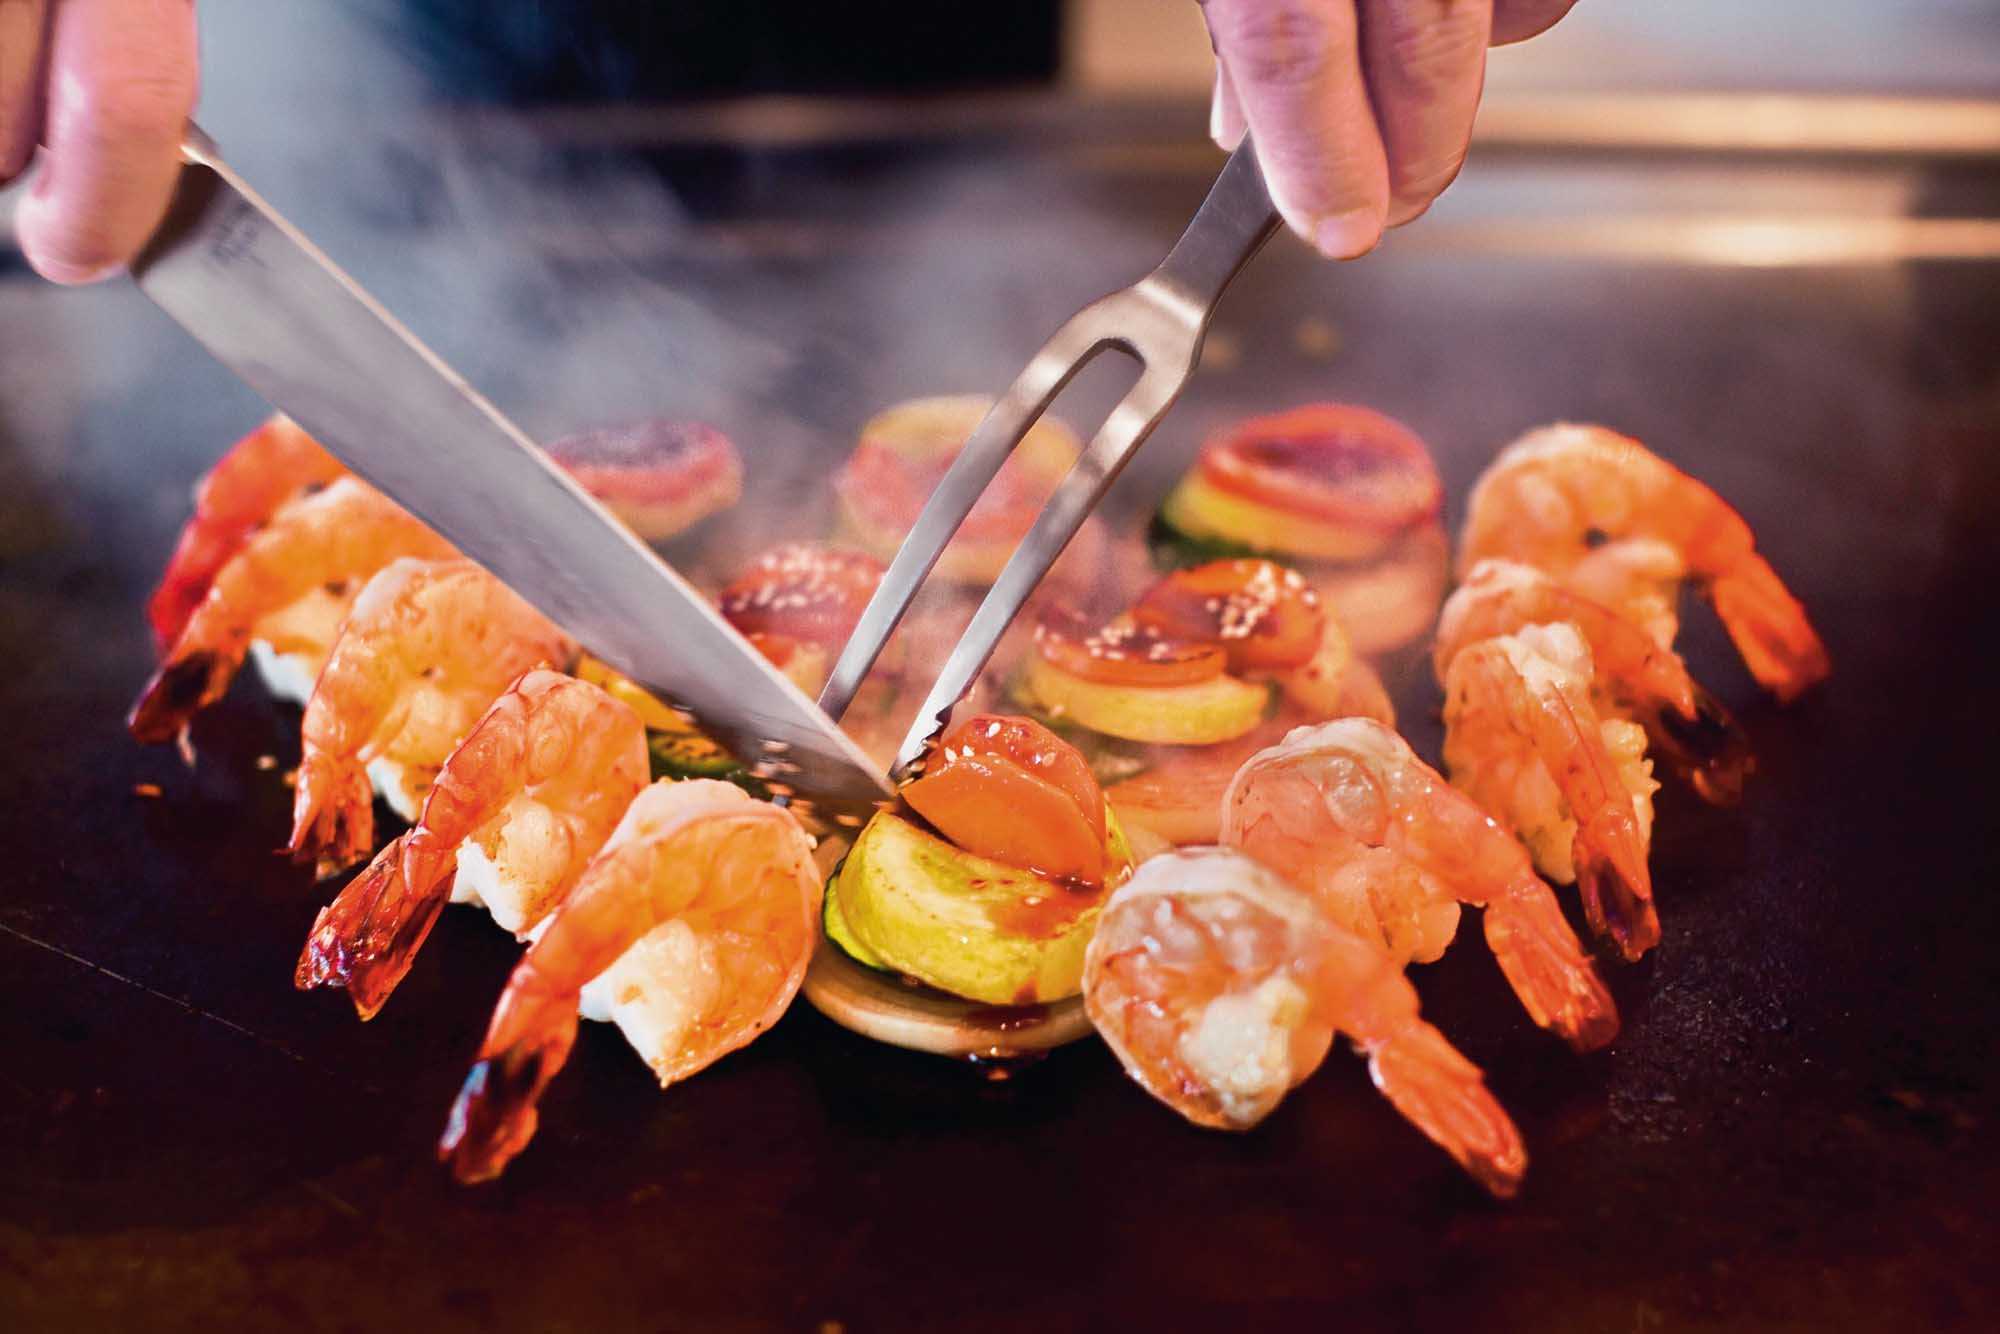 Twirling knives and juicy shrimp straight from the grill add up to a Hibachi style treat at Teppanyaki, an authentic Japanese experience on your Norwegian Cruise Line sailing.